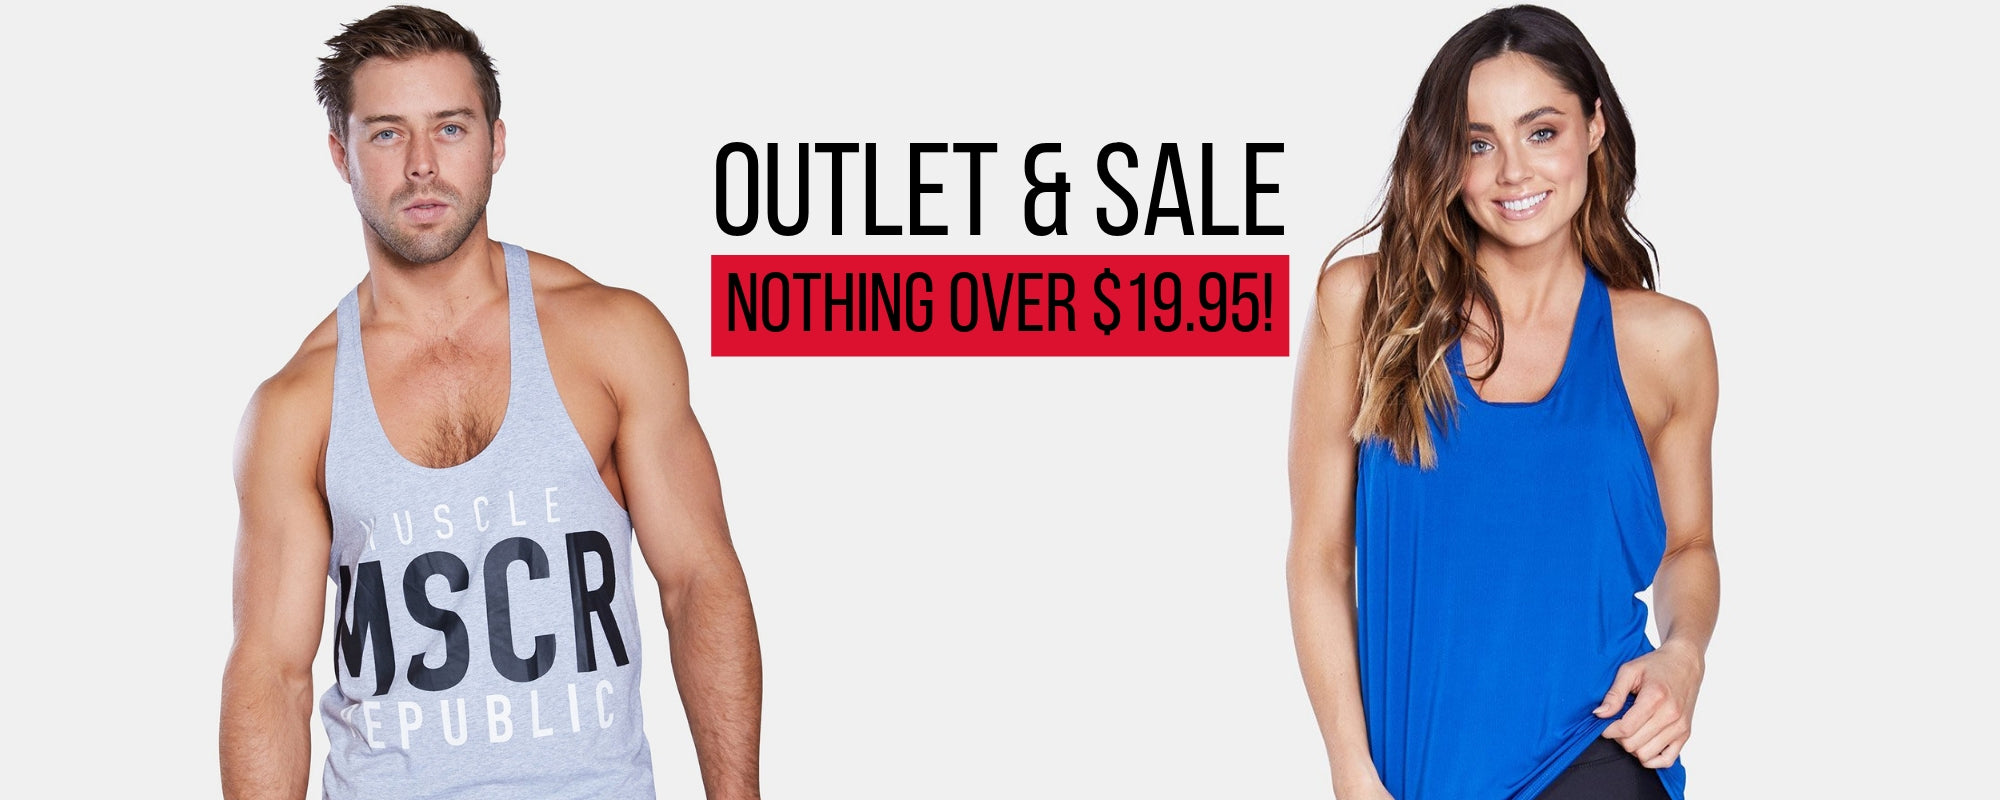 Shop the Outlet now!